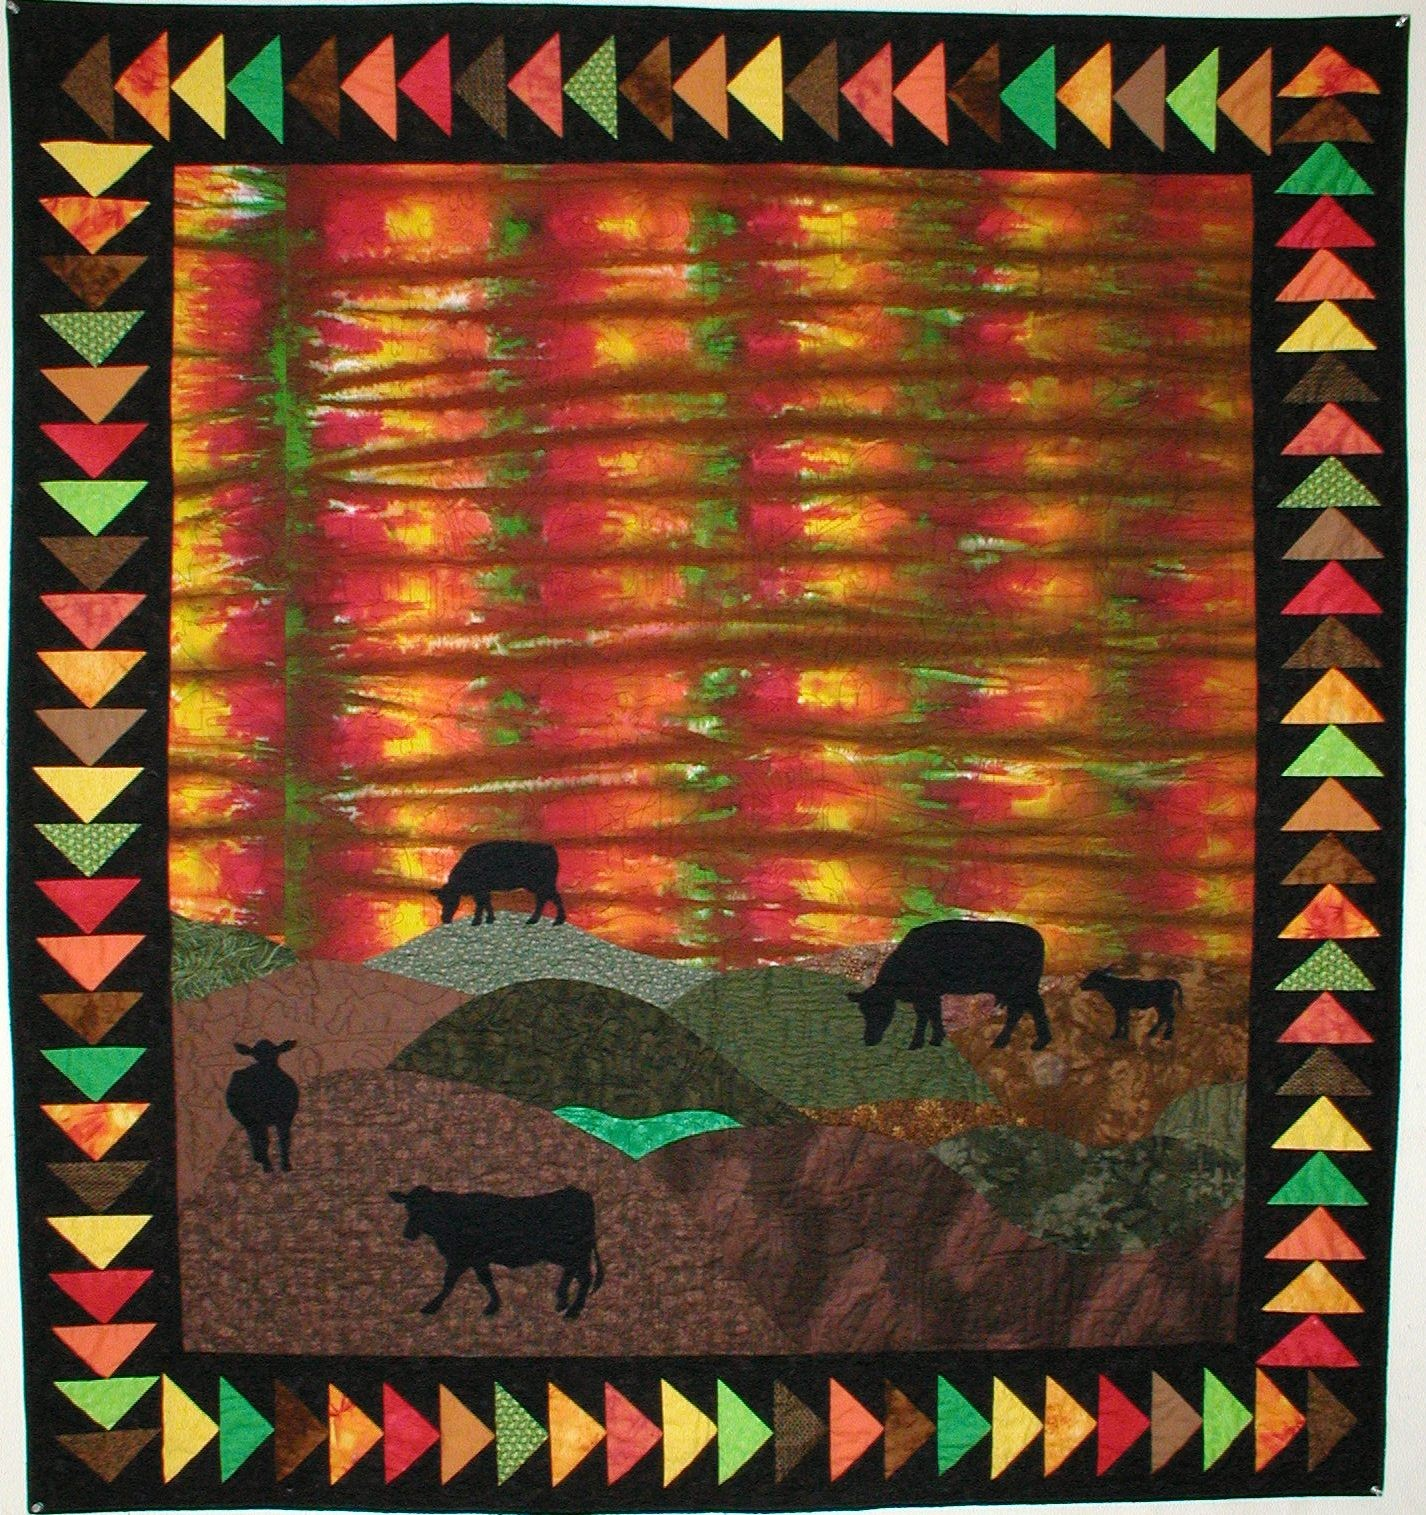 Barnyard Dreams - Quilt